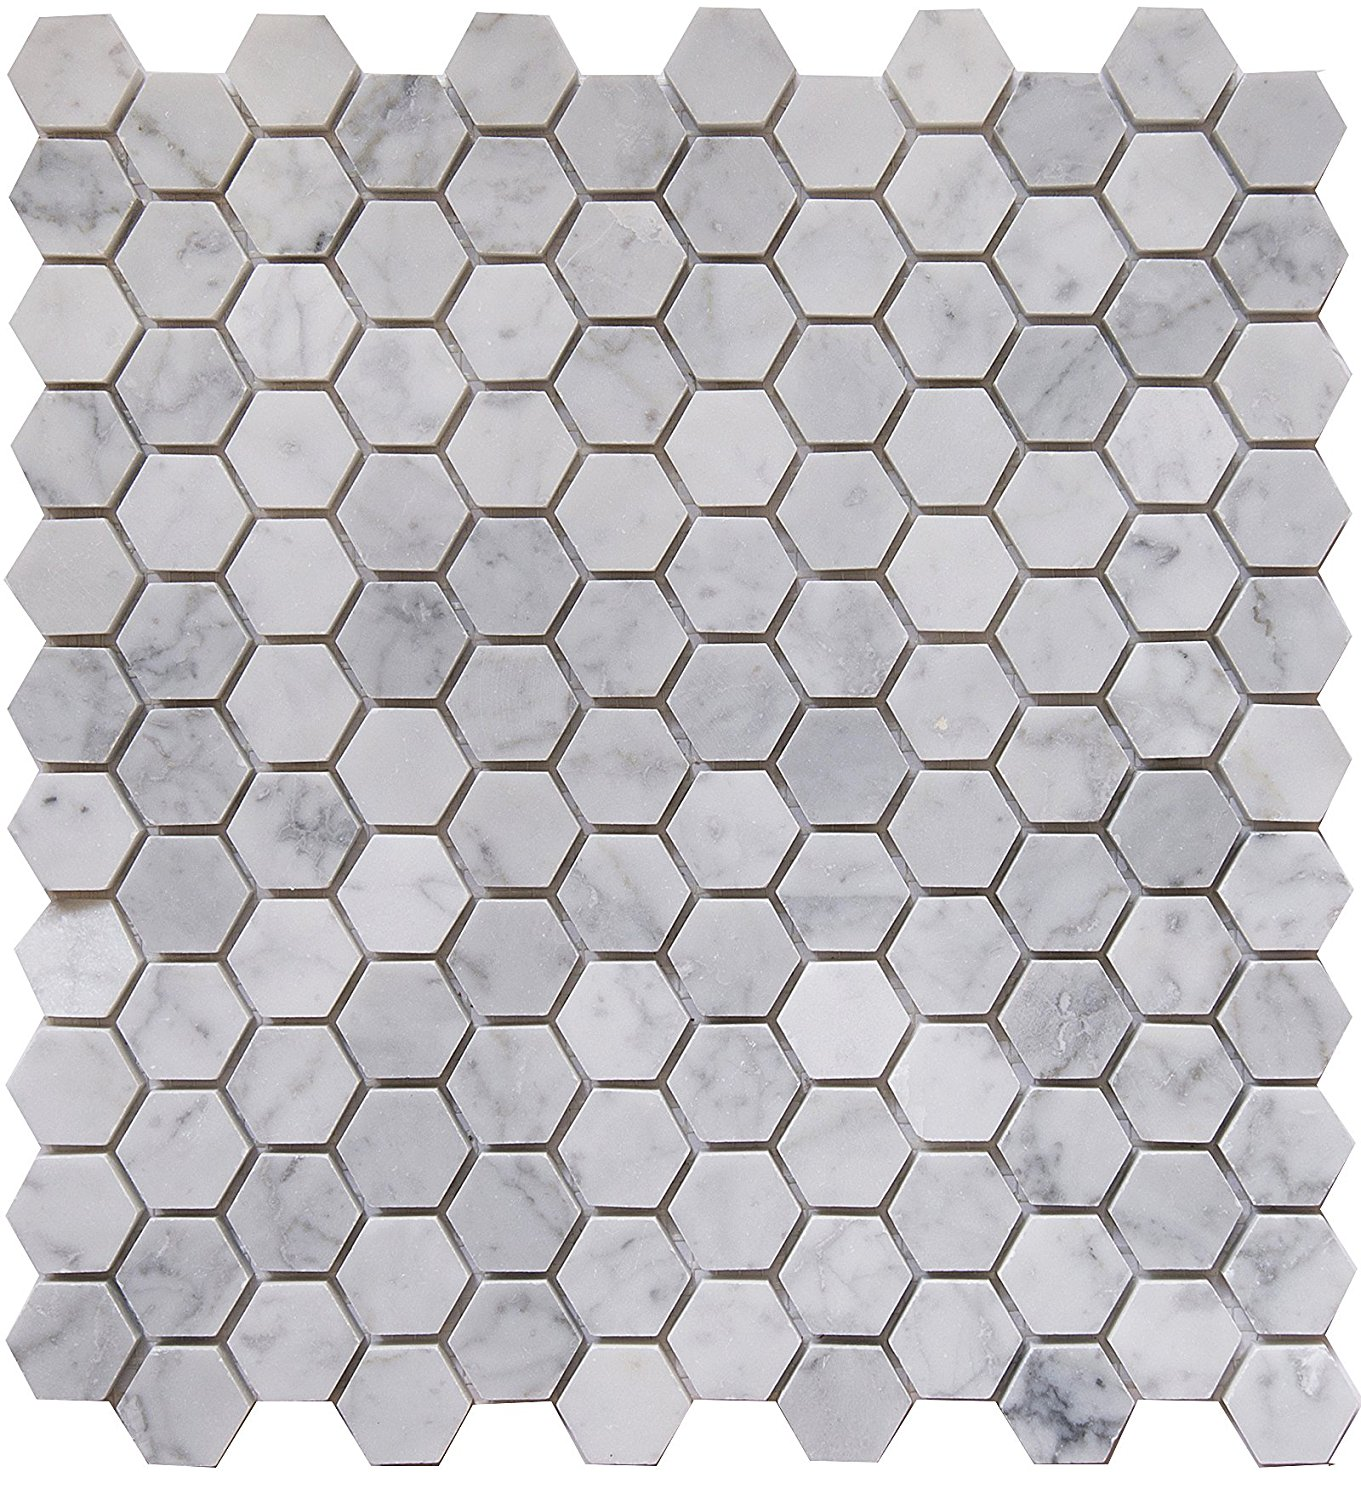 """Carrara White Marble Mosaic Tile, CWMM1HEX, Chip Size 1"""" Hexagon, 11-1/2""""X11""""X3/8"""", Polished (Box of 5 Sheets)"""